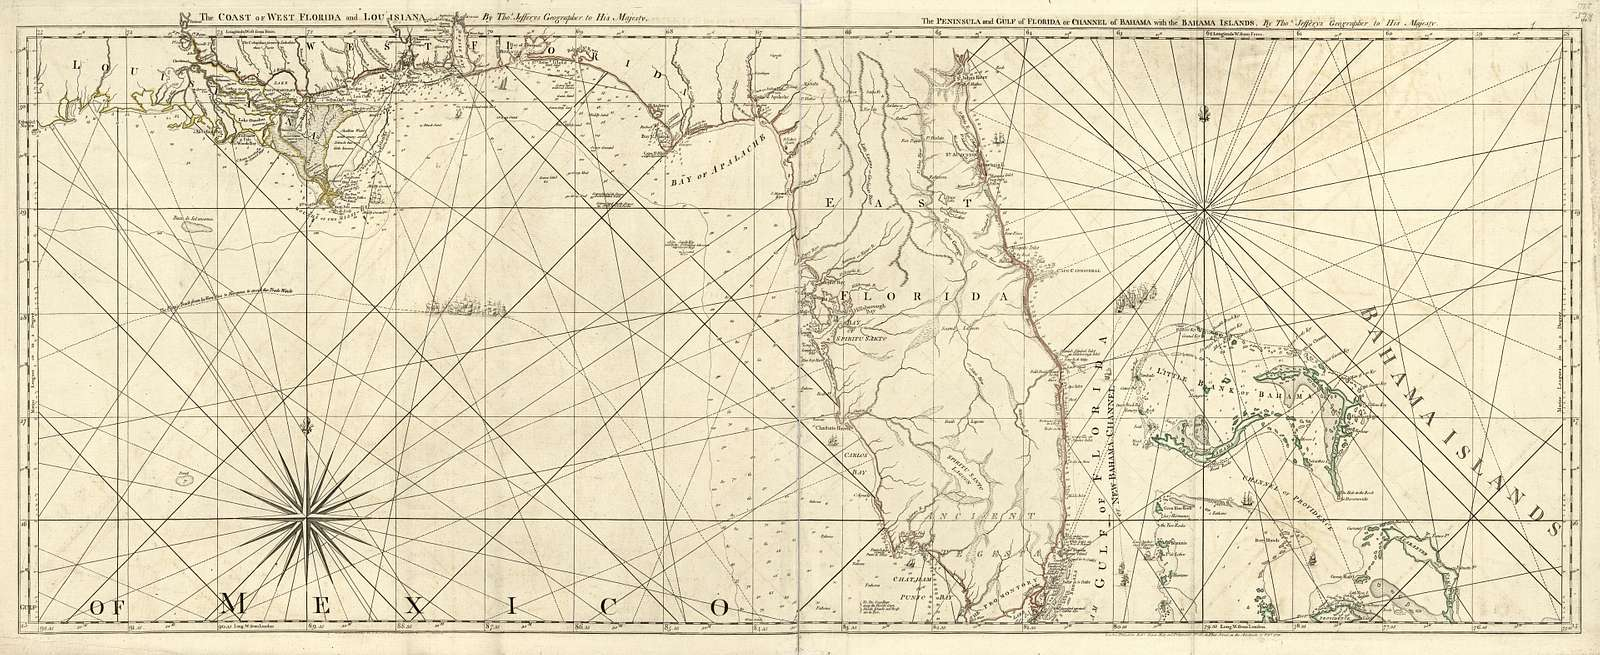 The Coast of West Florida and Louisiana : the Peninsula and Gulf of Florida or Channel of Bahama with the Bahama Islands /